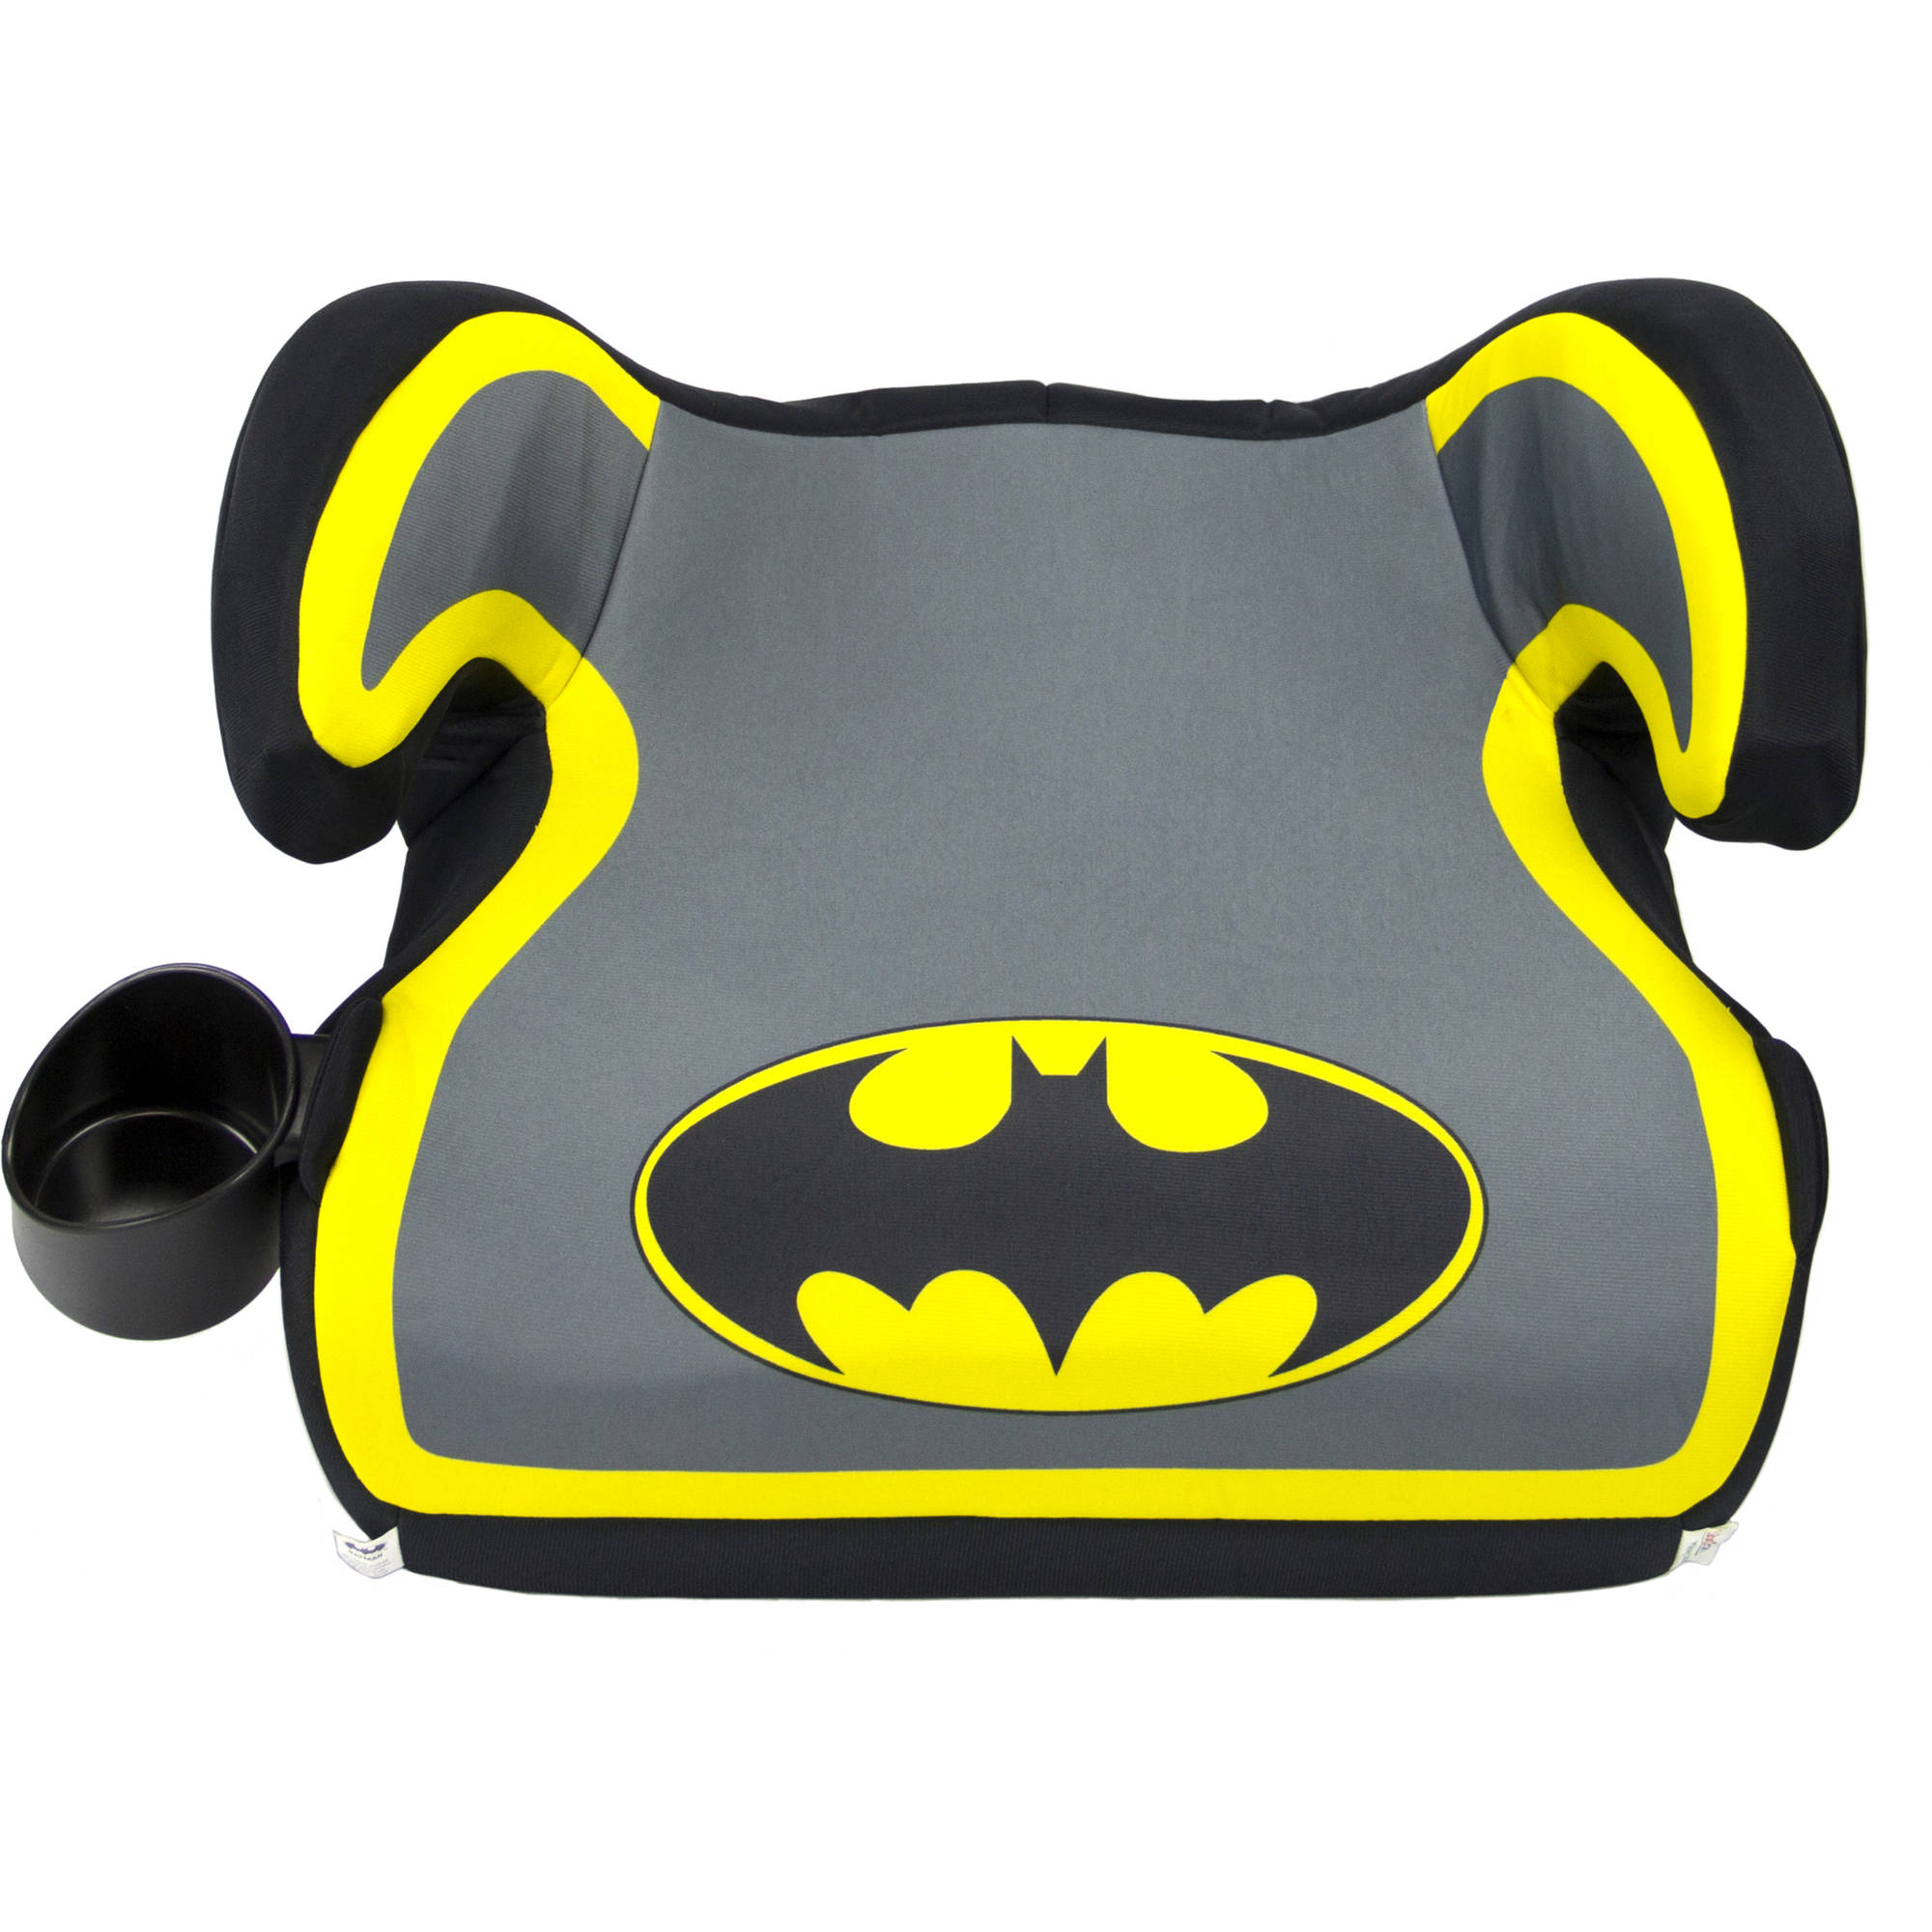 Kidsembrace Fun-Ride Backless Booster Car Seat, Batman